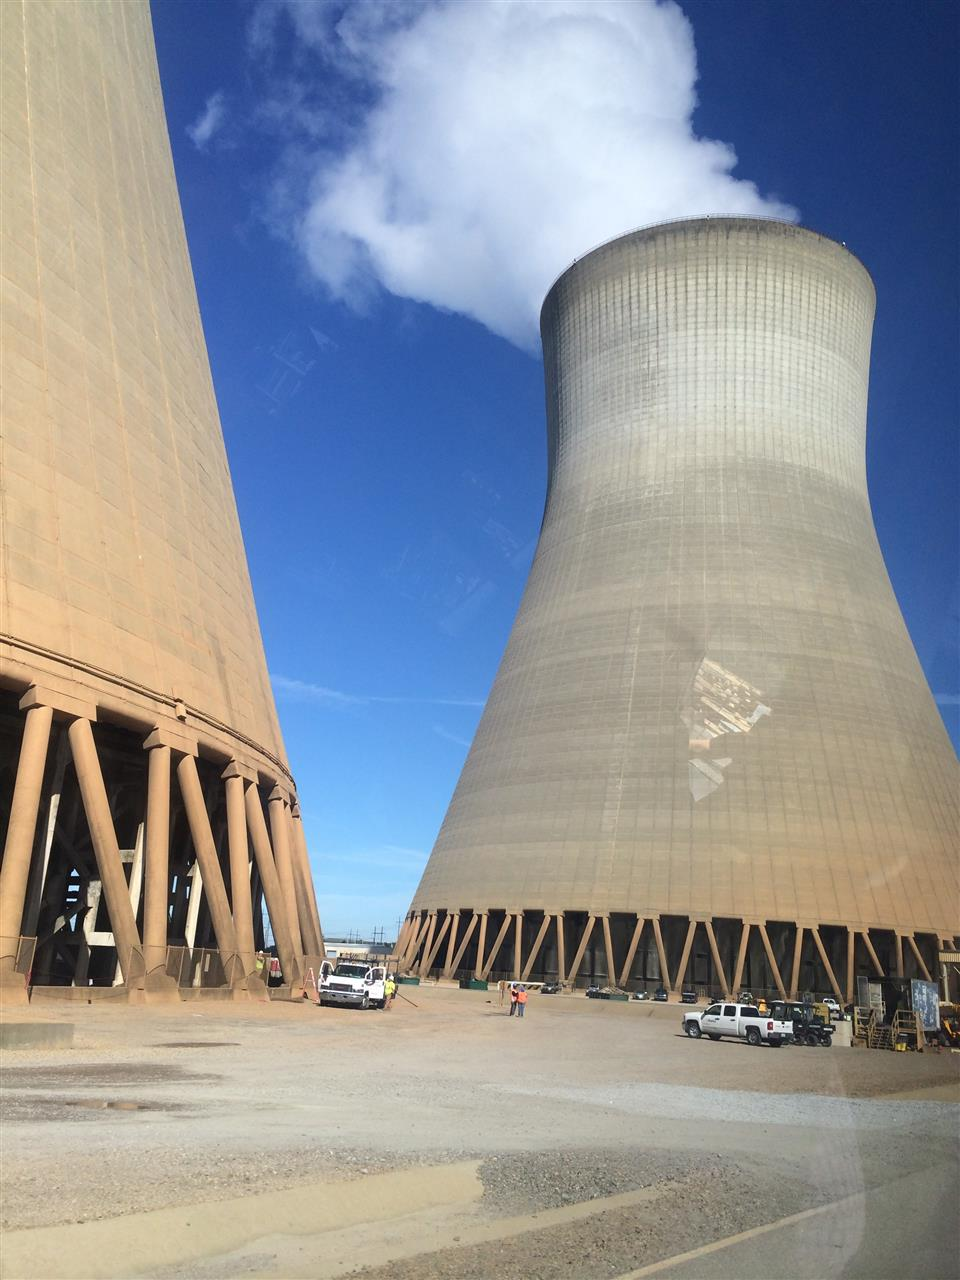 Plant Vogtle currently has two working nuclear reactors, but two more are under construction that will make Plant Vogtle the largest nuclear power plant in the United States.